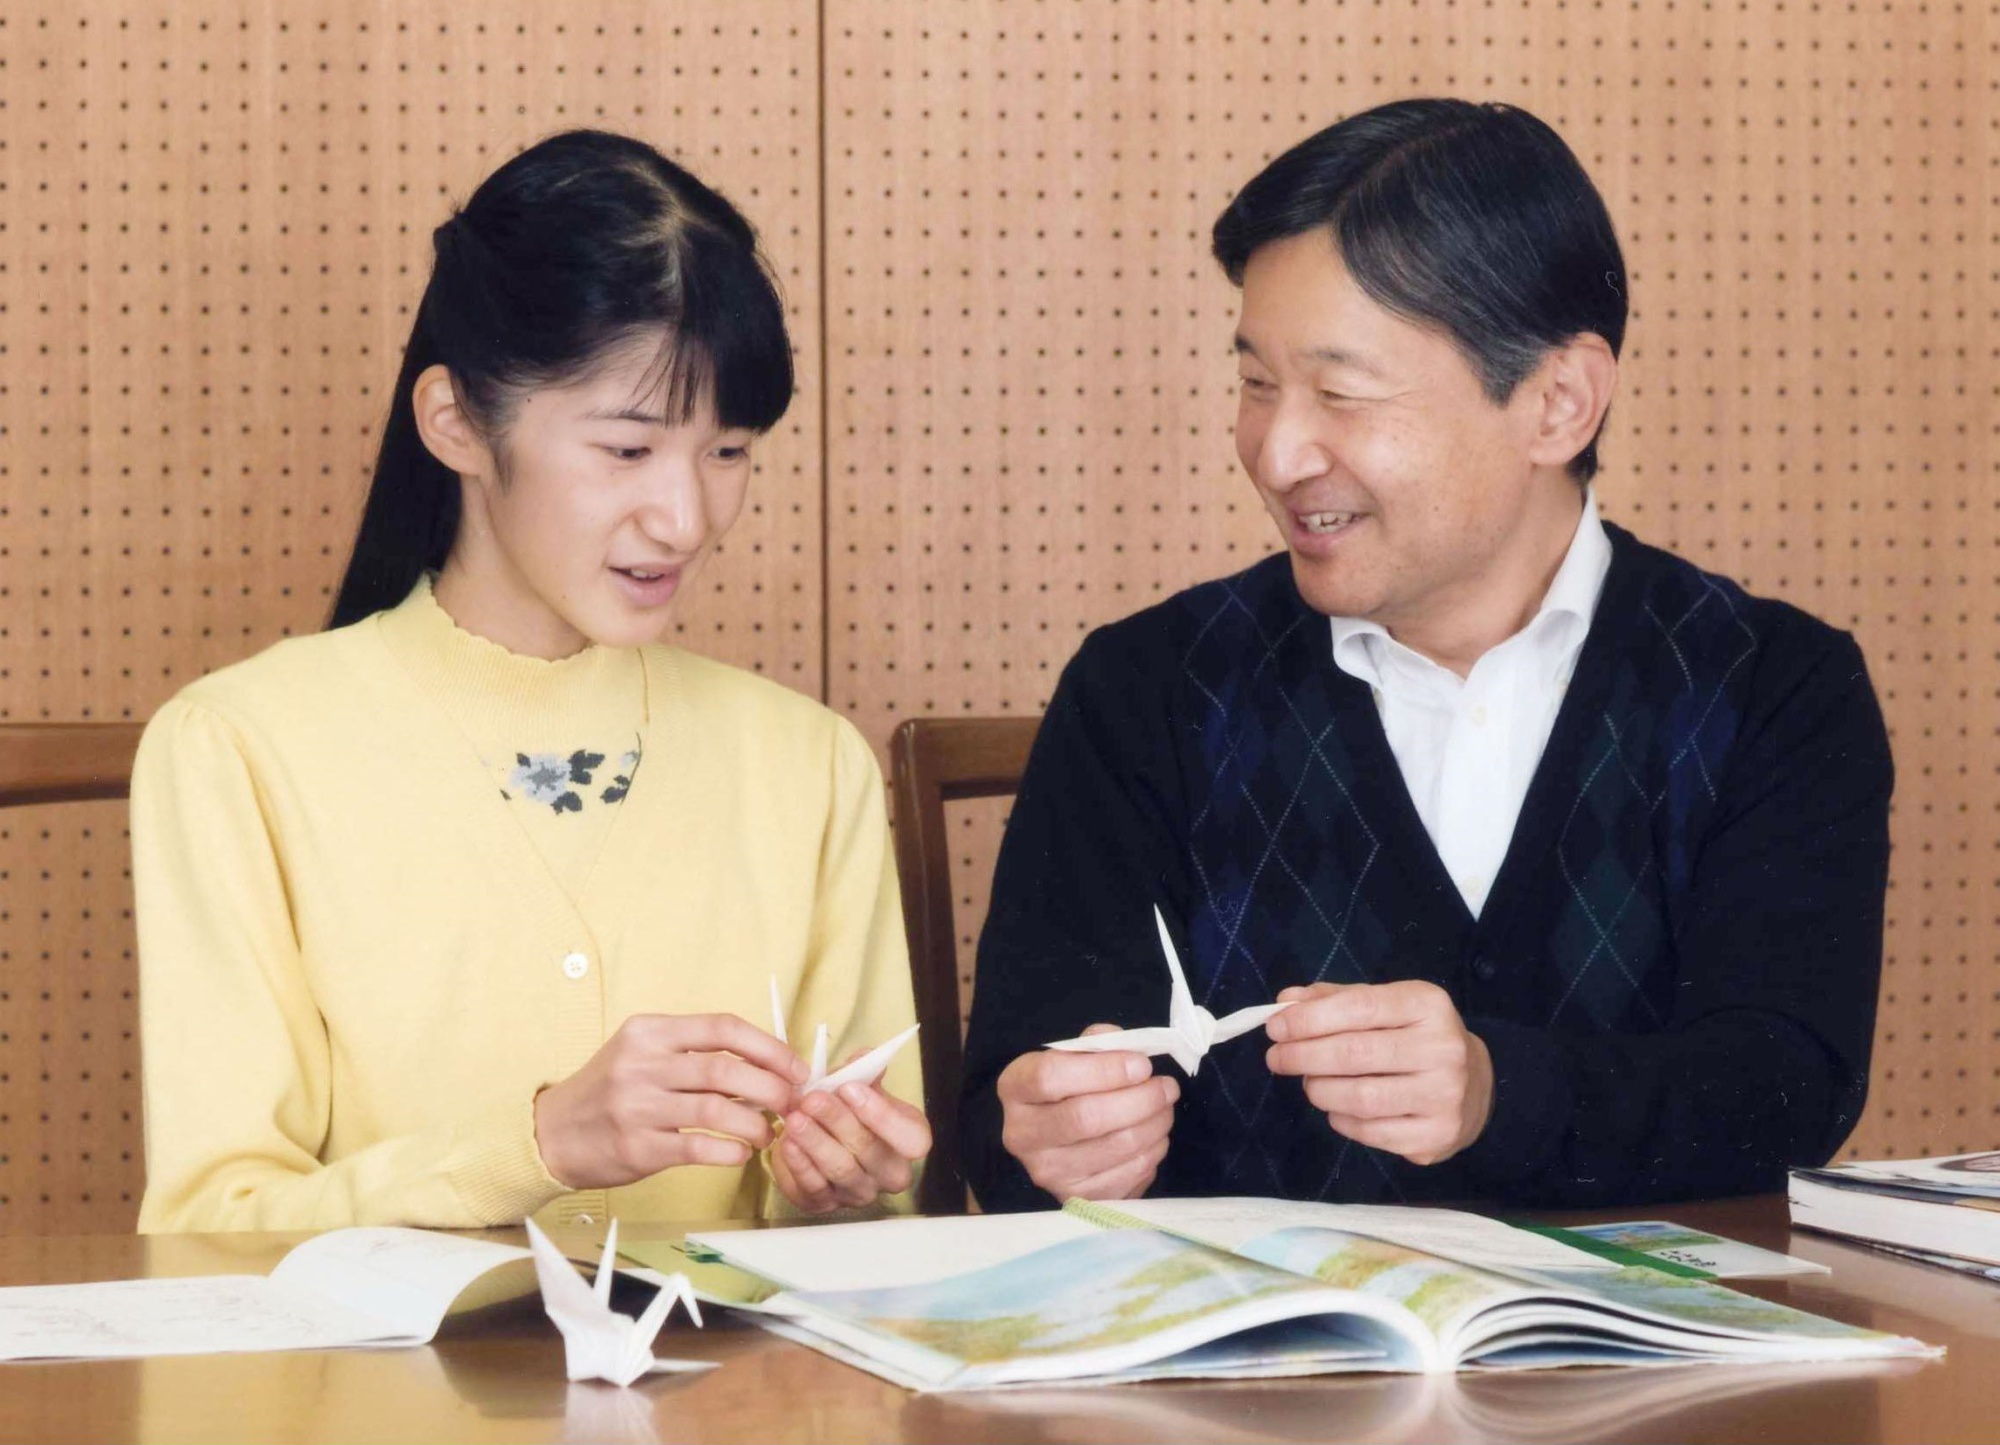 Princess Aiko Turns 15 Slowly Learning Official Duties